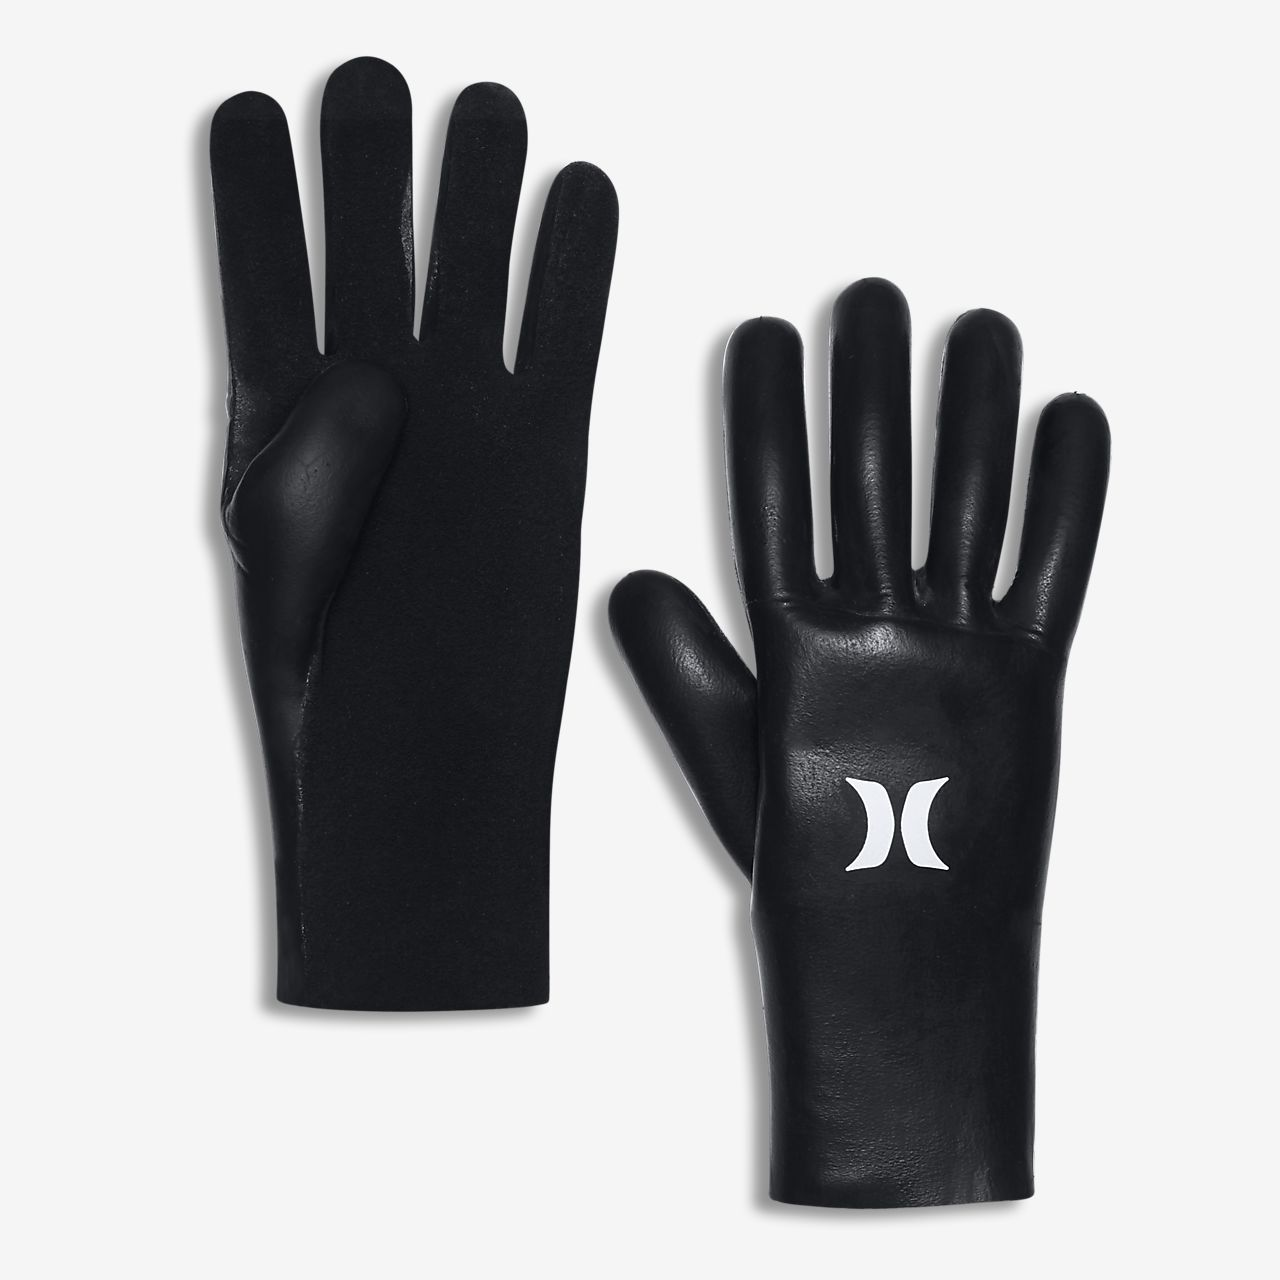 Hurley Advantage Plus 3/3mm Wetsuit Gloves